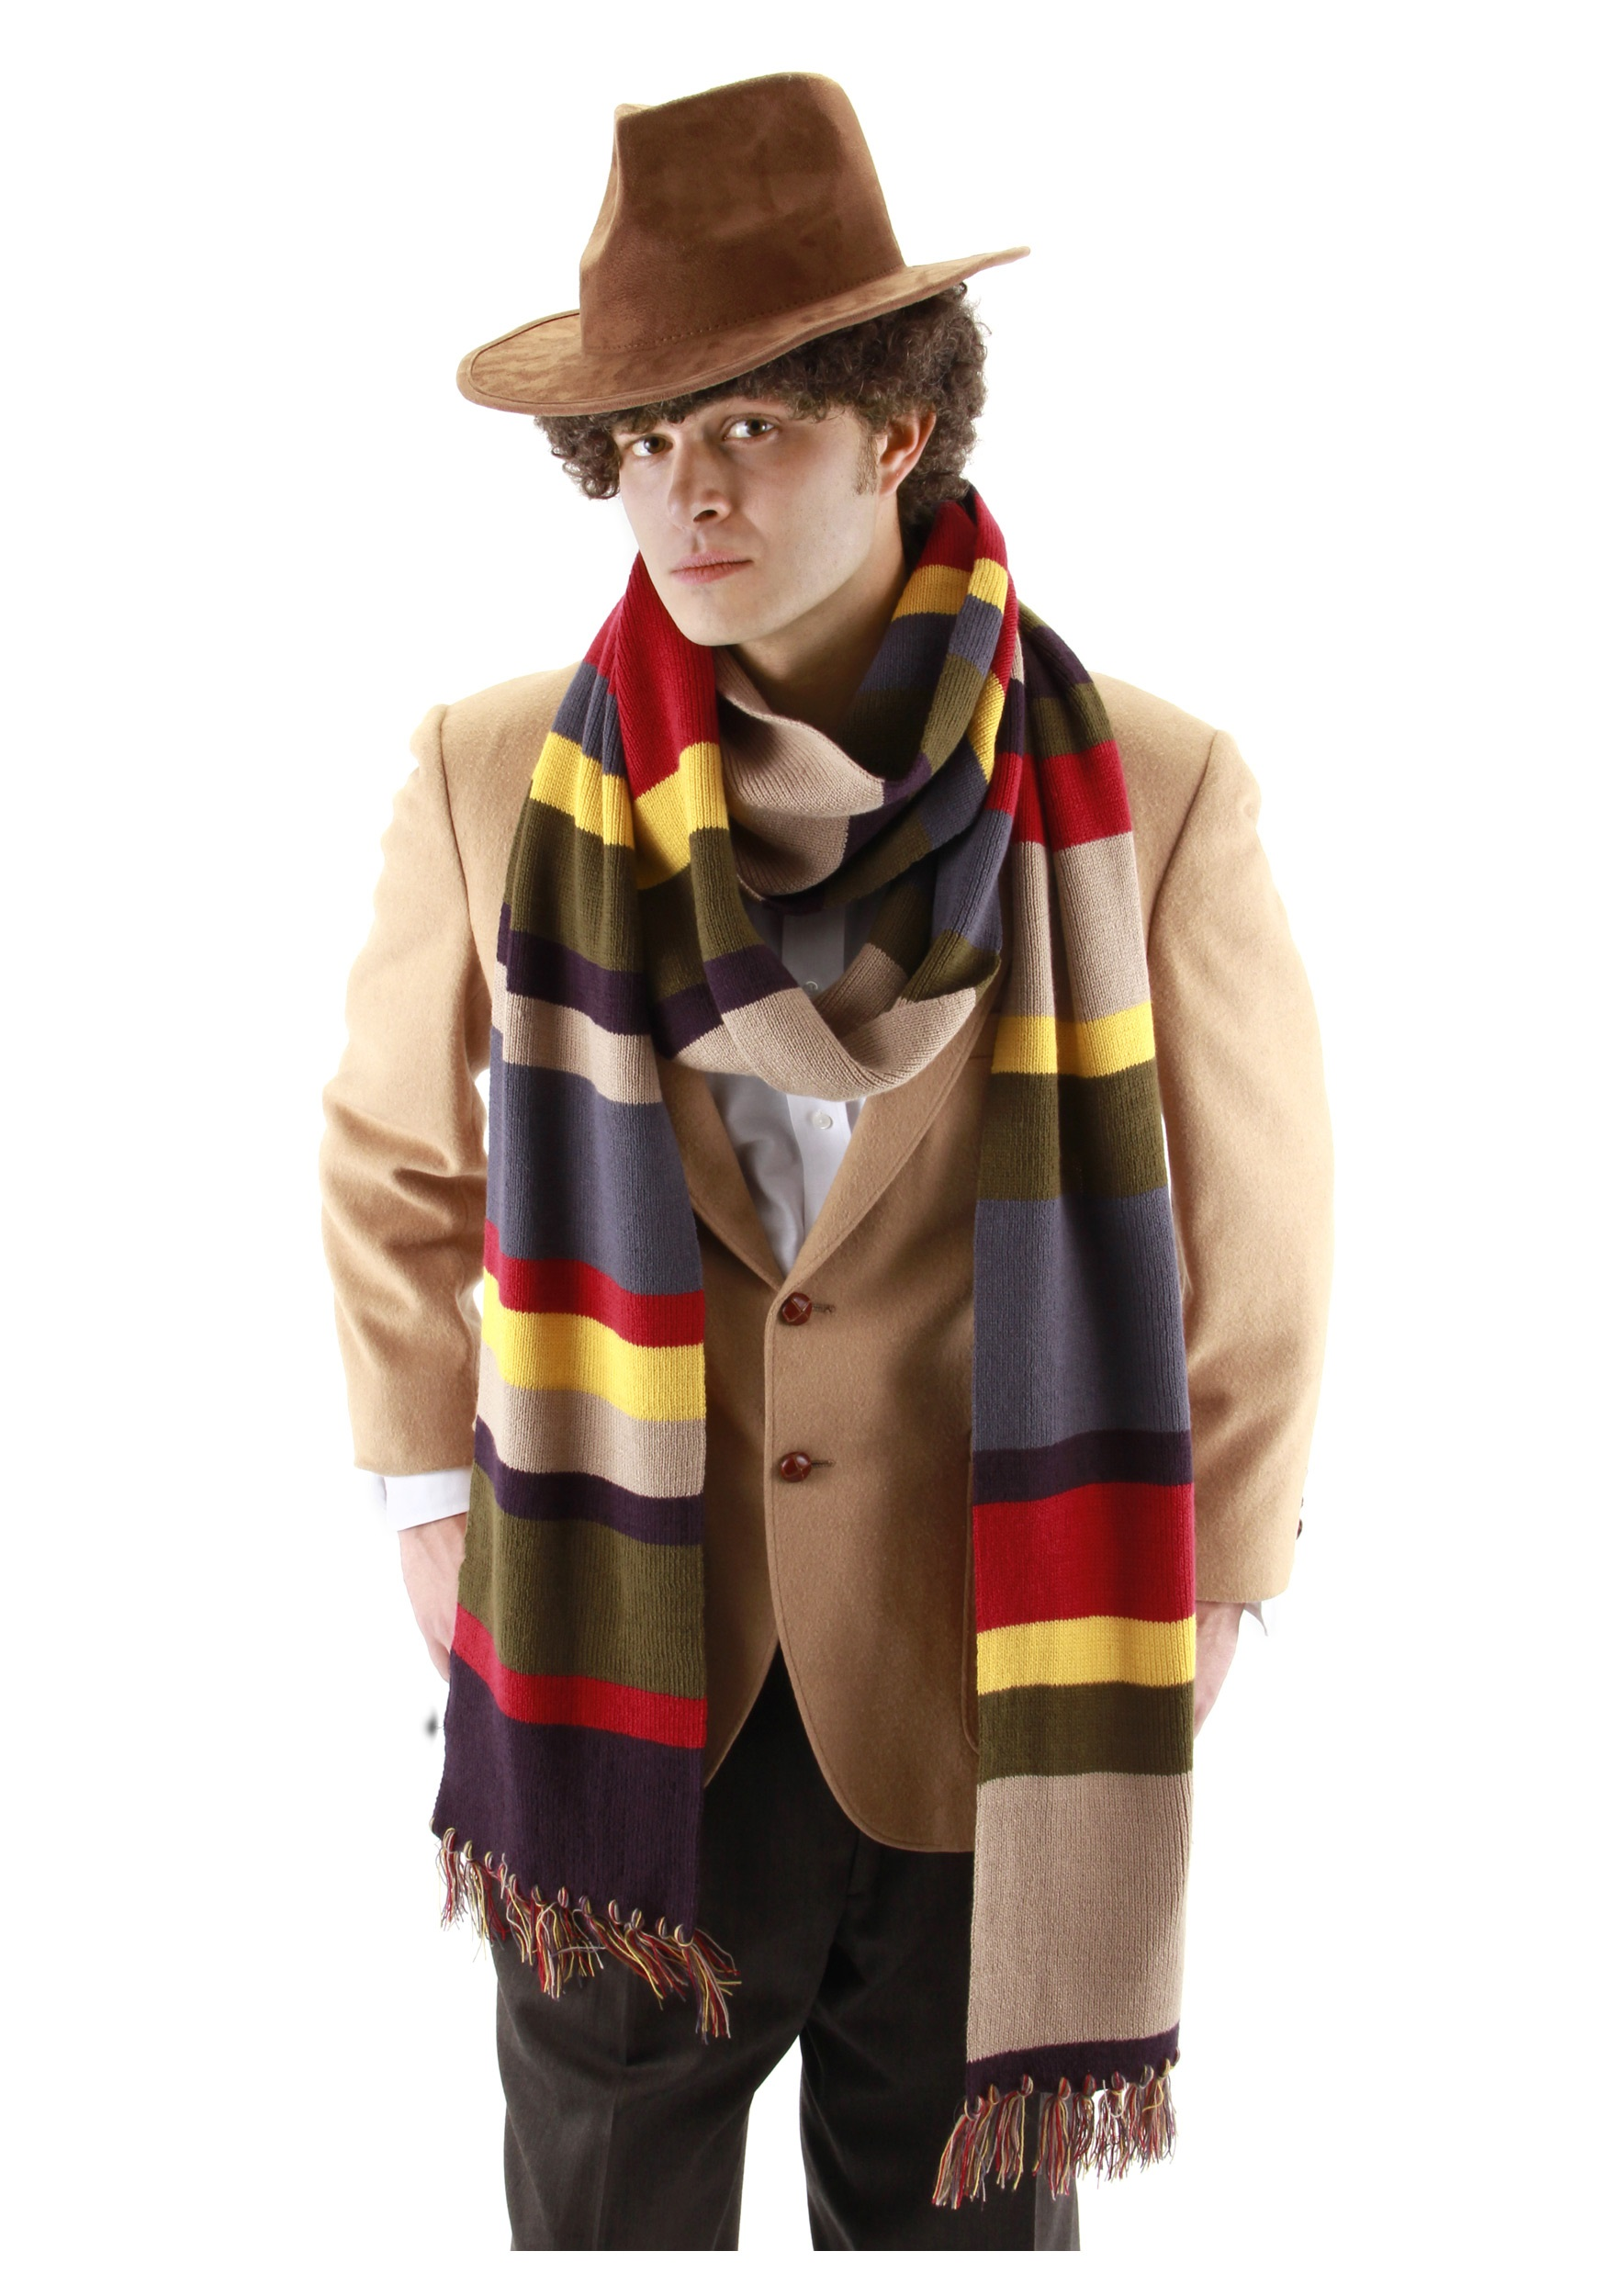 115 fourth doctor who scarf